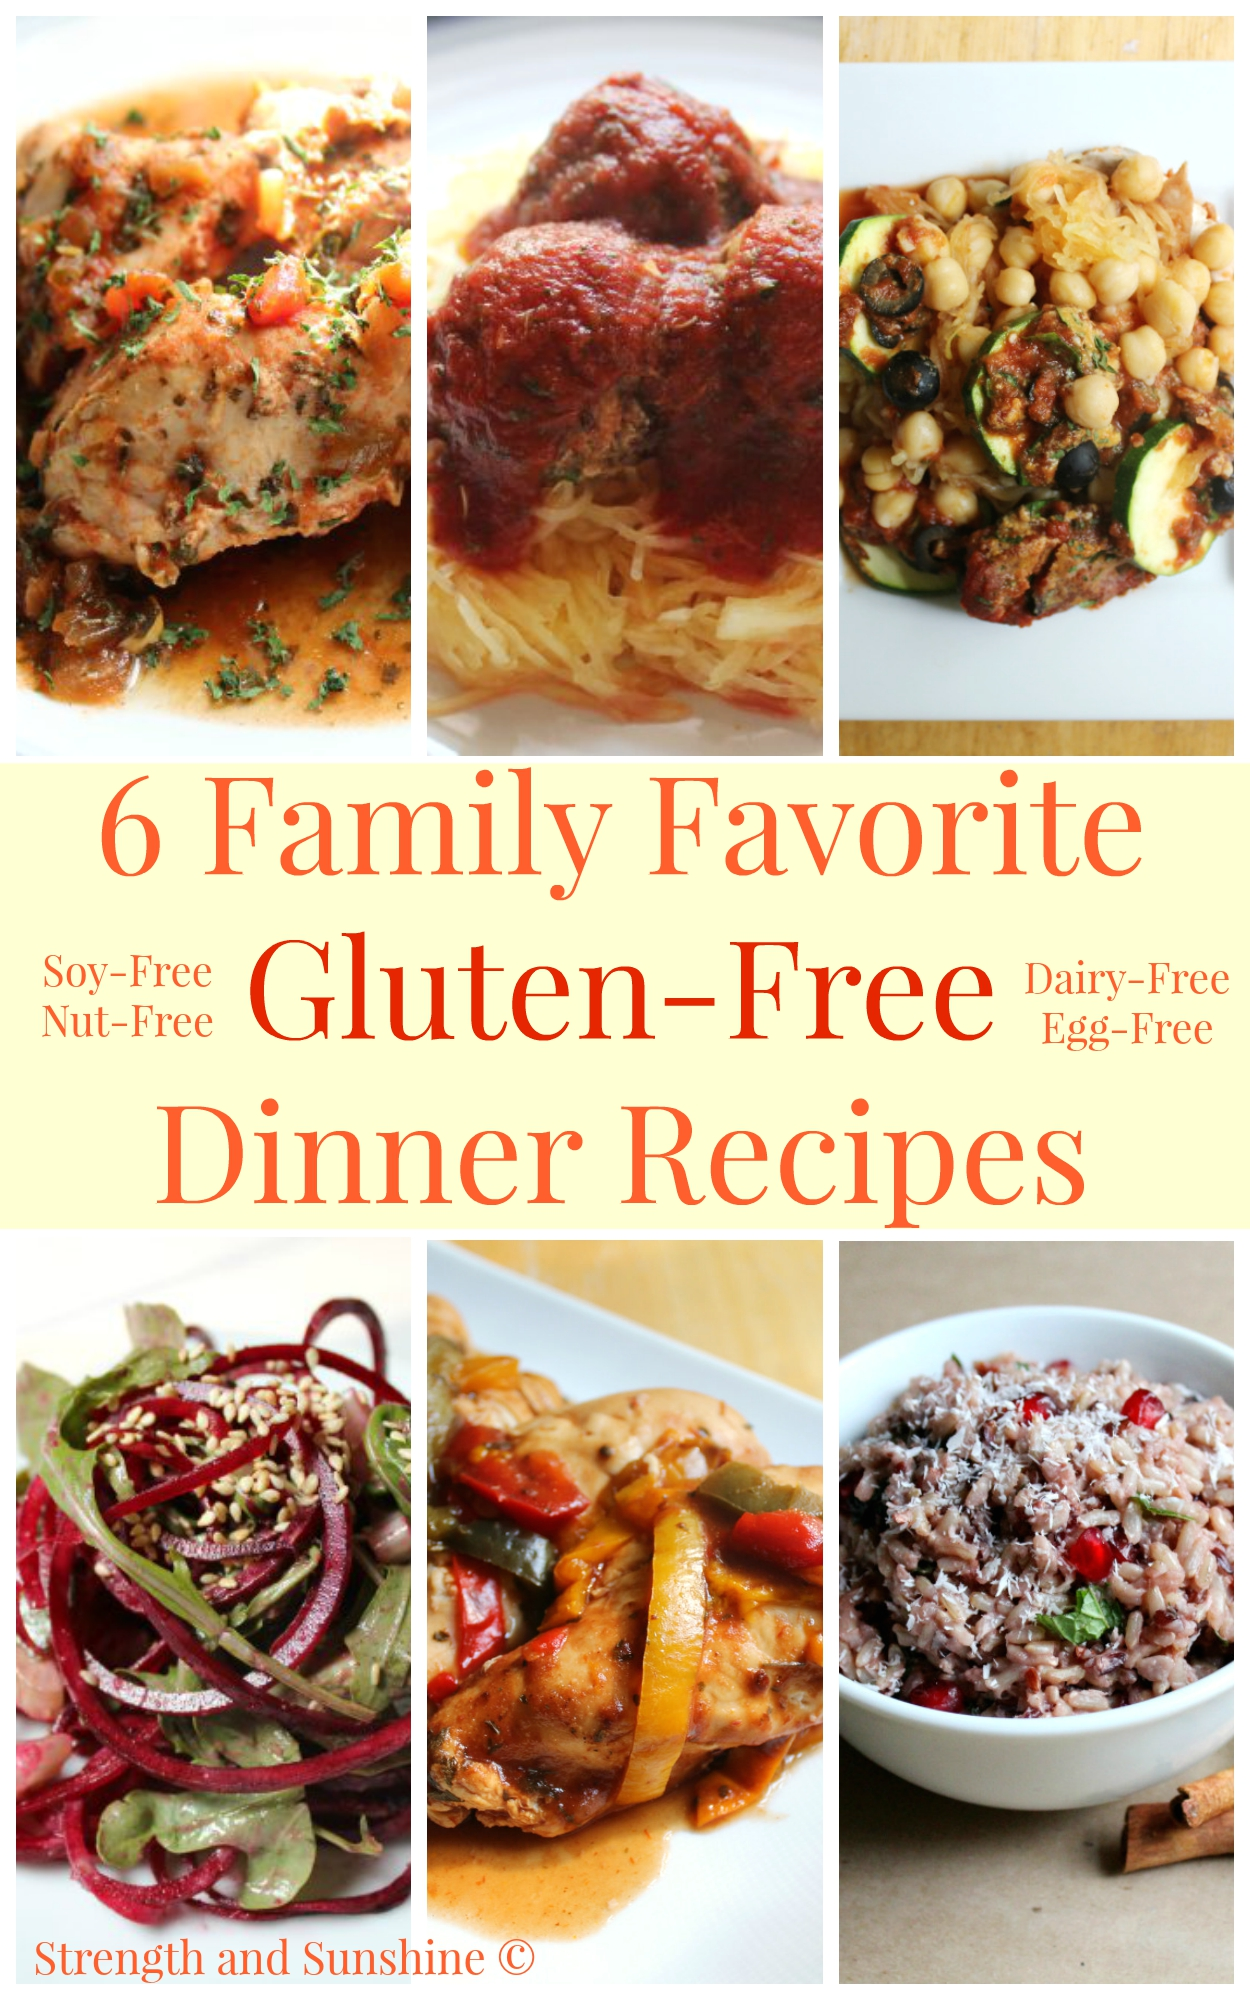 6 Family Favorite Gluten-Free Dinner Recipes | Strength and Sunshine @RebeccaGF666 Getting back to the table with 6 family favorite gluten-free dinner recipes. Amidst the chaos and hustle of the school year, gathering around the table for a nourishing, healthy meal with great company, laughs, and love is essential for reconnecting and de-stressing! Healthy meals that are also dairy-free, egg-free, soy-free, and nut-free!